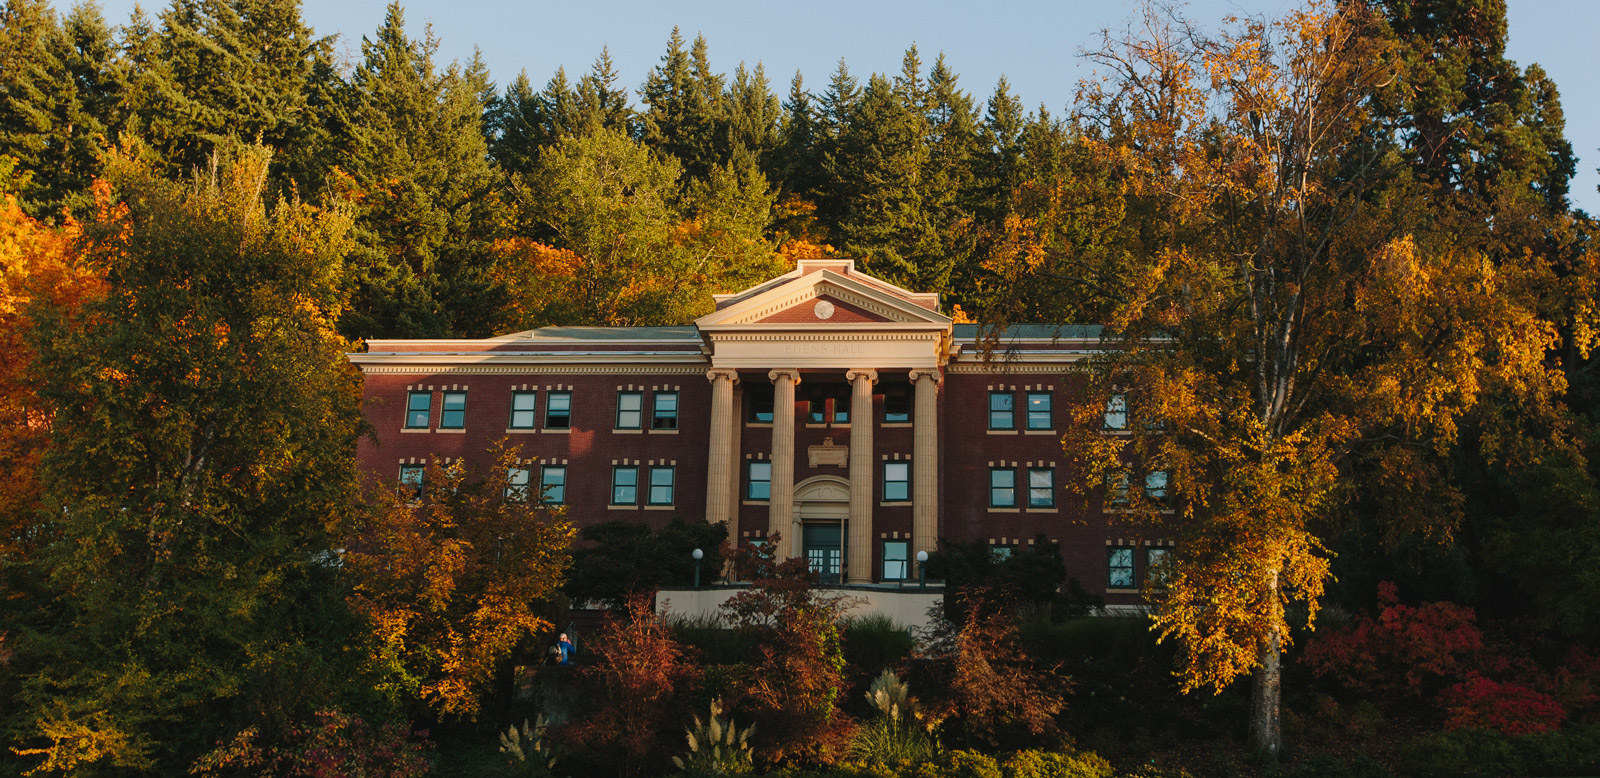 Edens Hall in the fall at sunset.